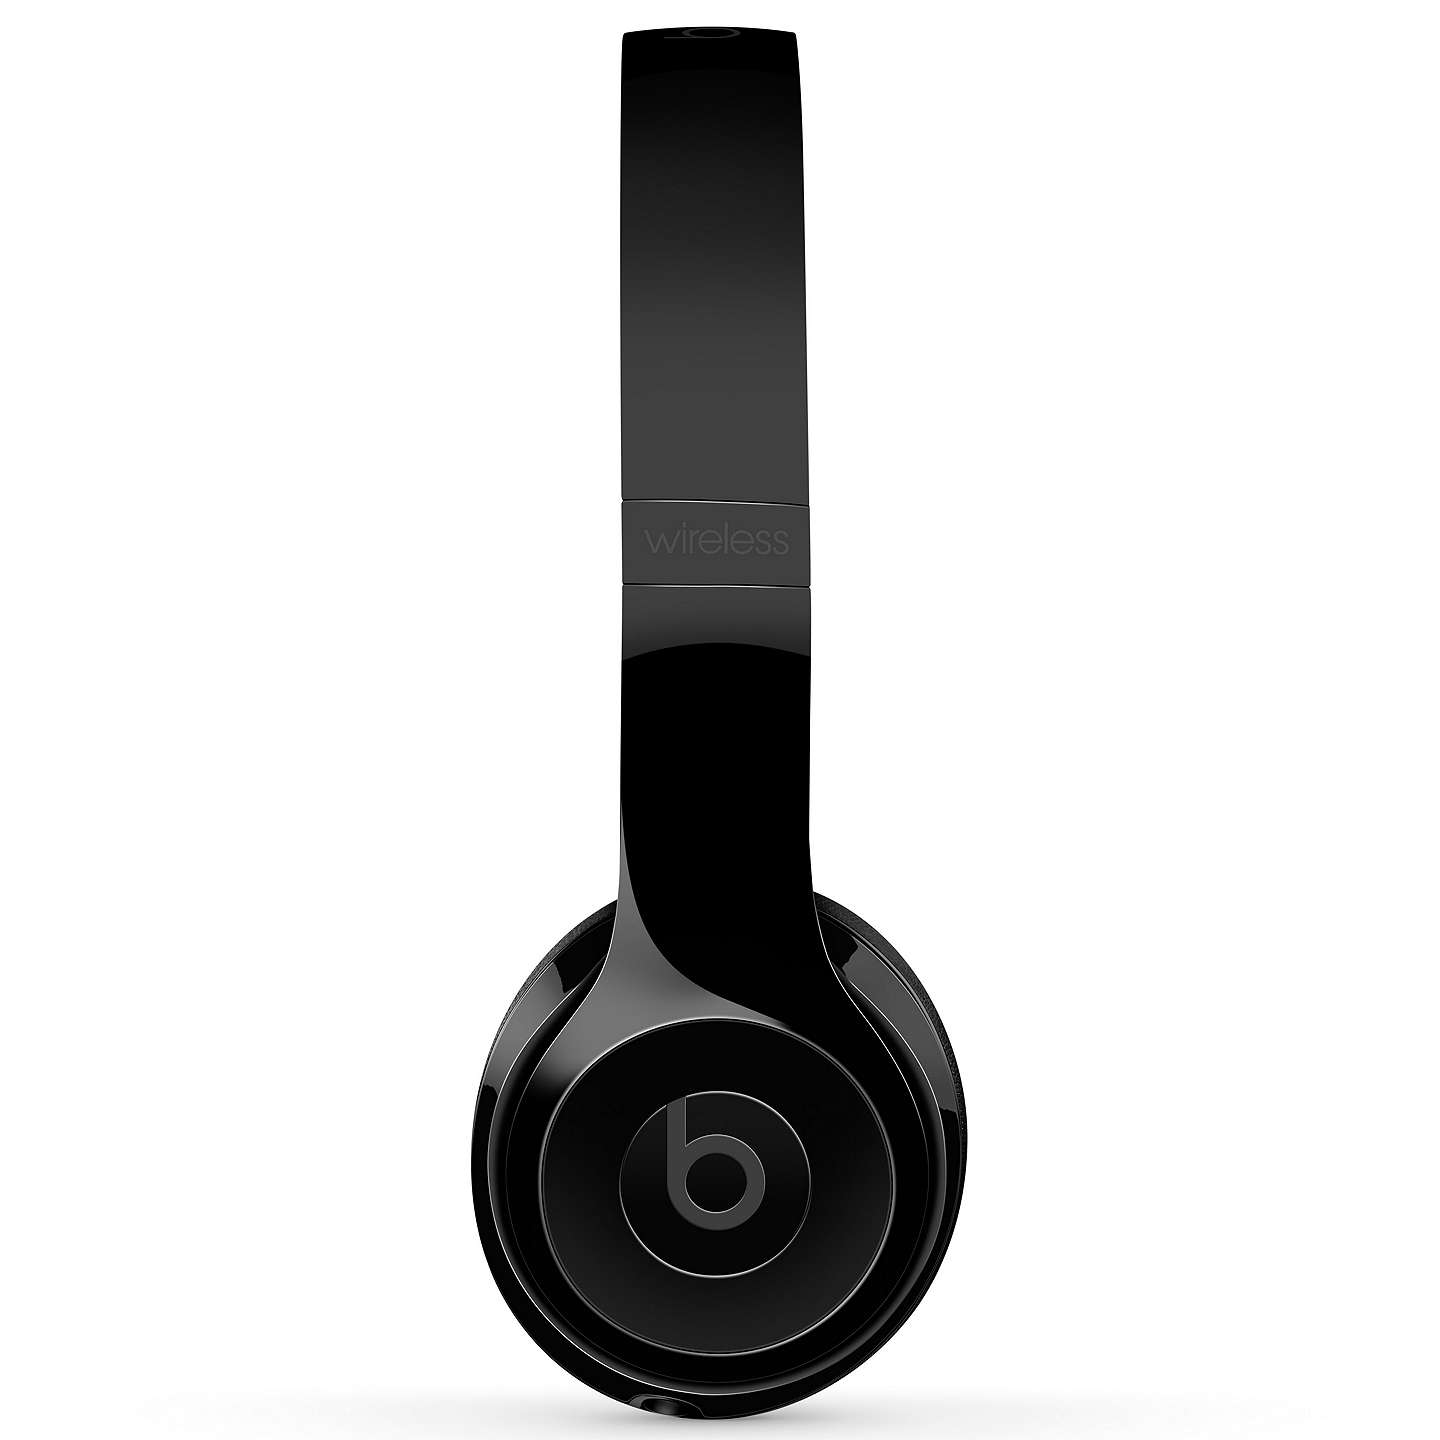 BuyBeats Solo³ Wireless Bluetooth On-Ear Headphones with Mic/Remote, Gloss Black Online at johnlewis.com